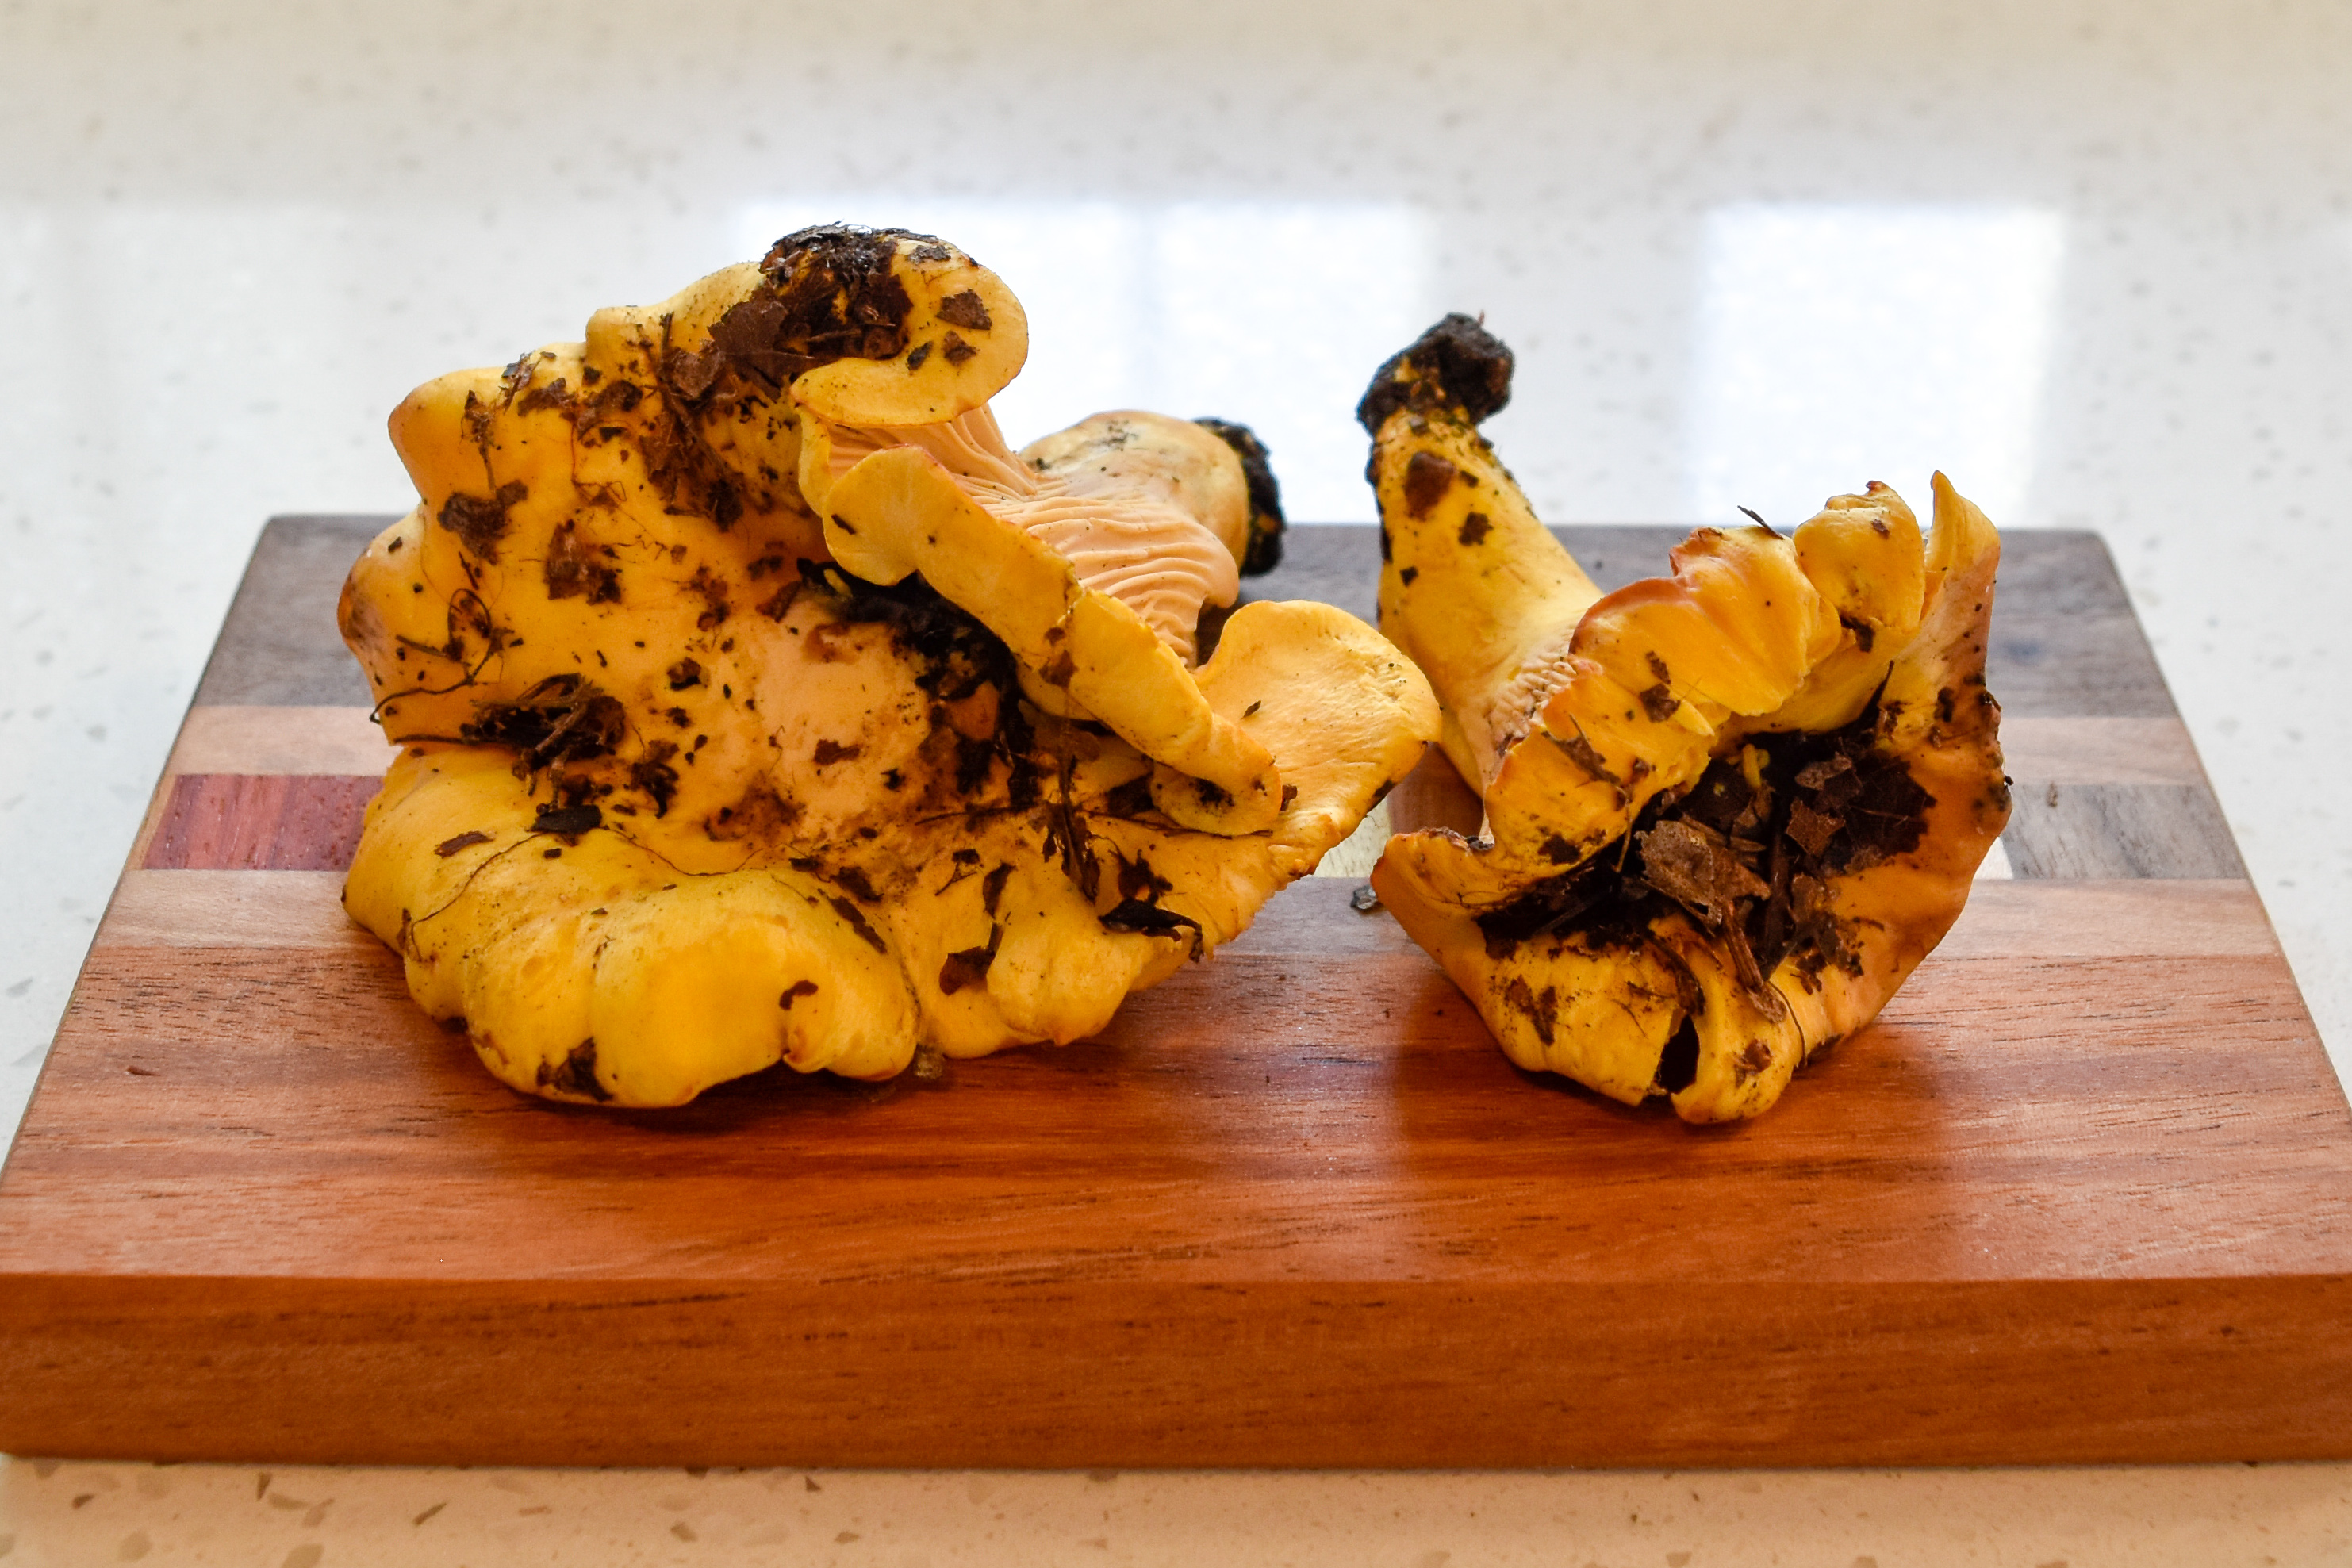 How to Clean & Cook Chanterelle Mushrooms